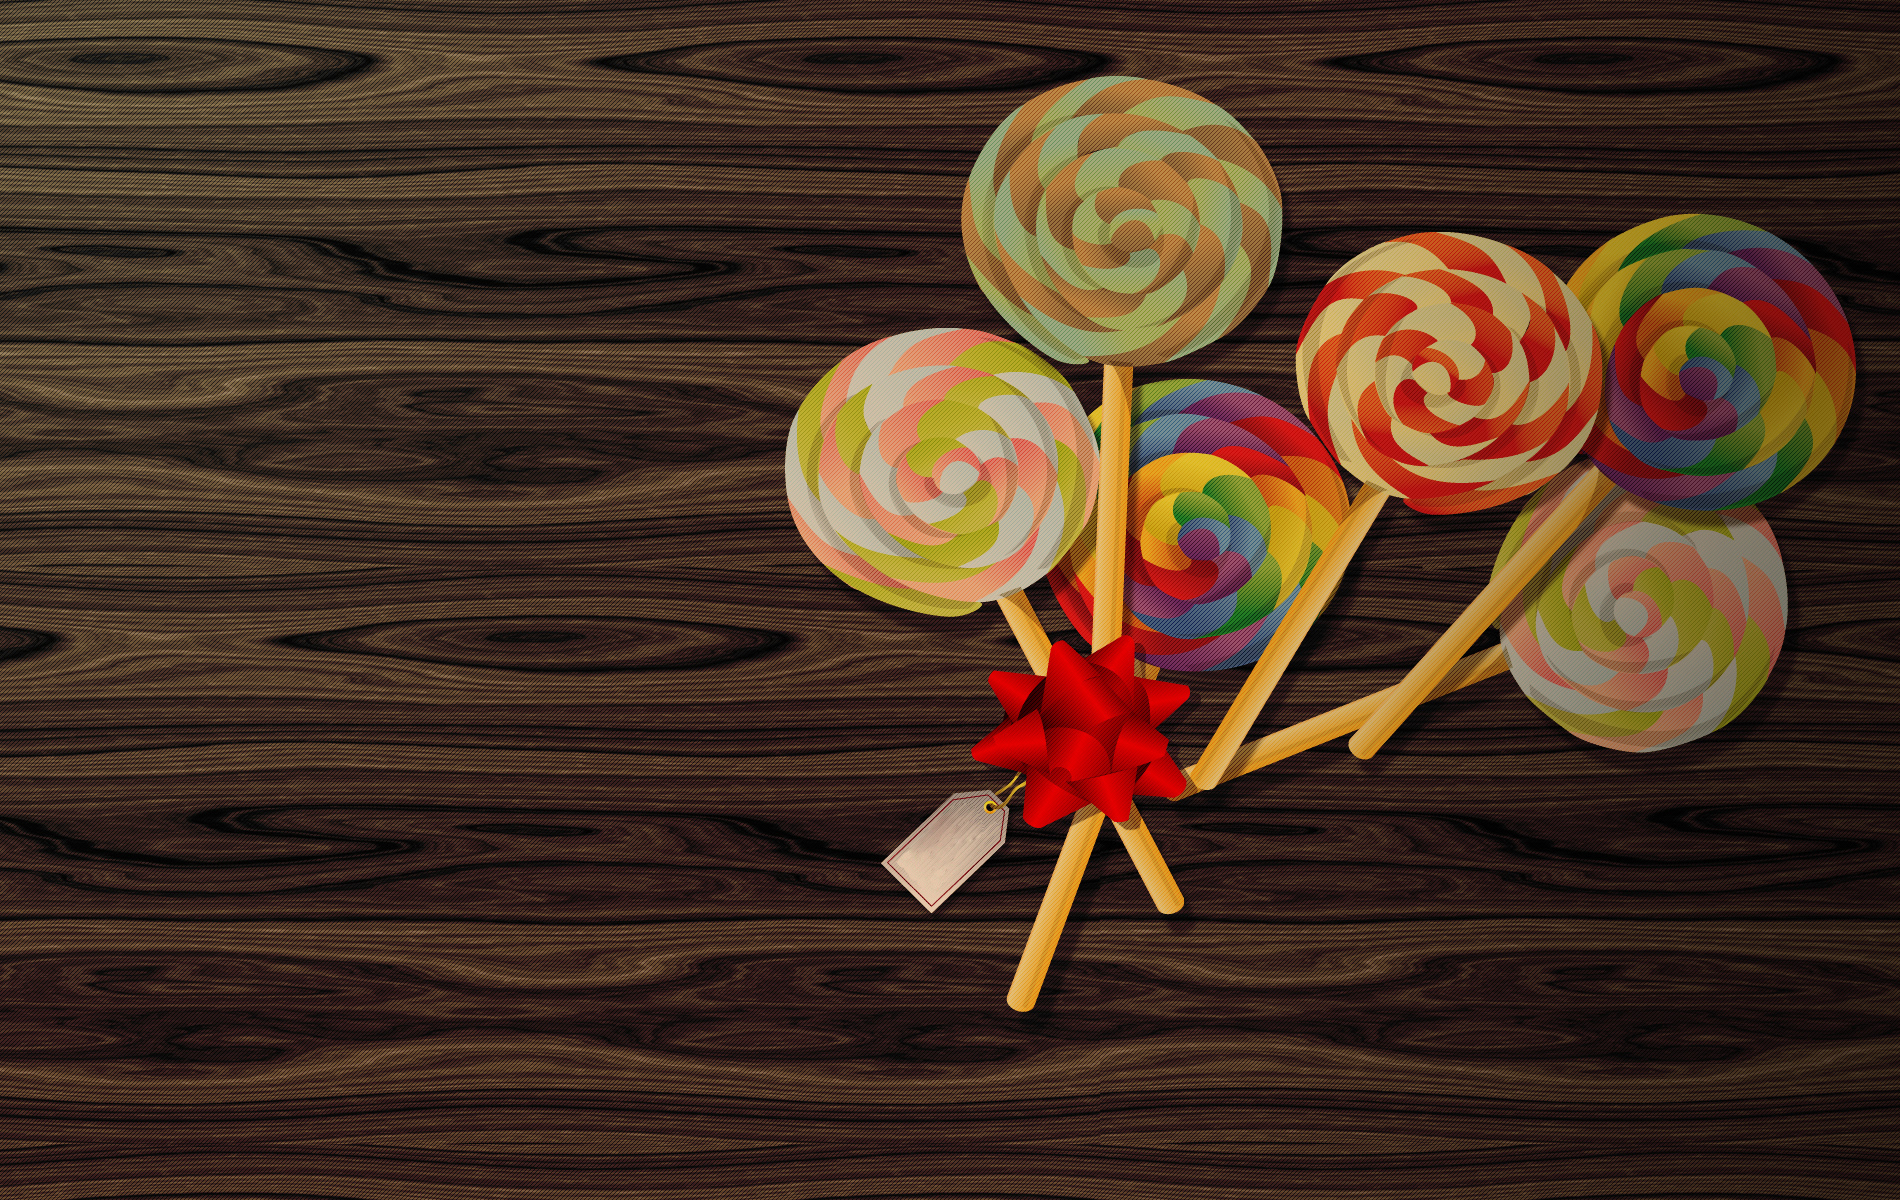 Candy Abstract Wallpaper Candy Lollipop HD